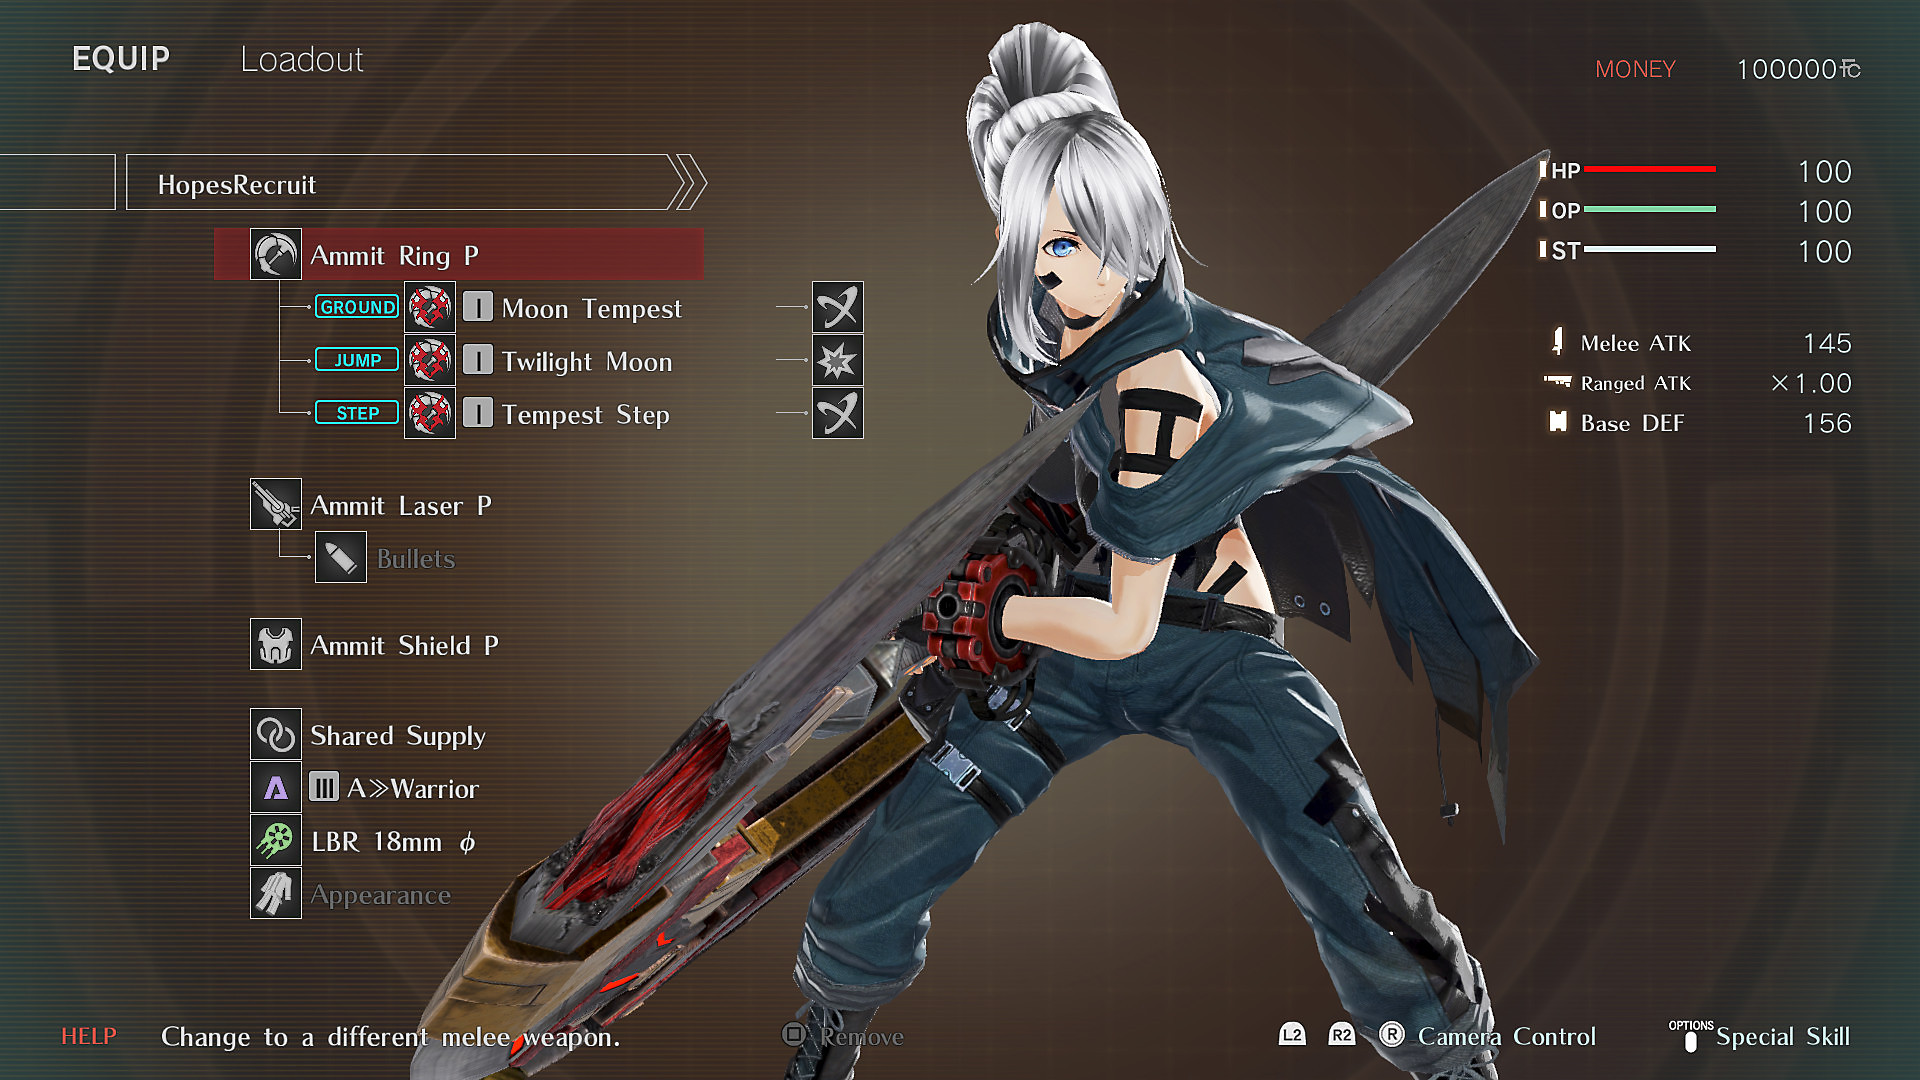 GOD EATER 3 Character Loadout Screen